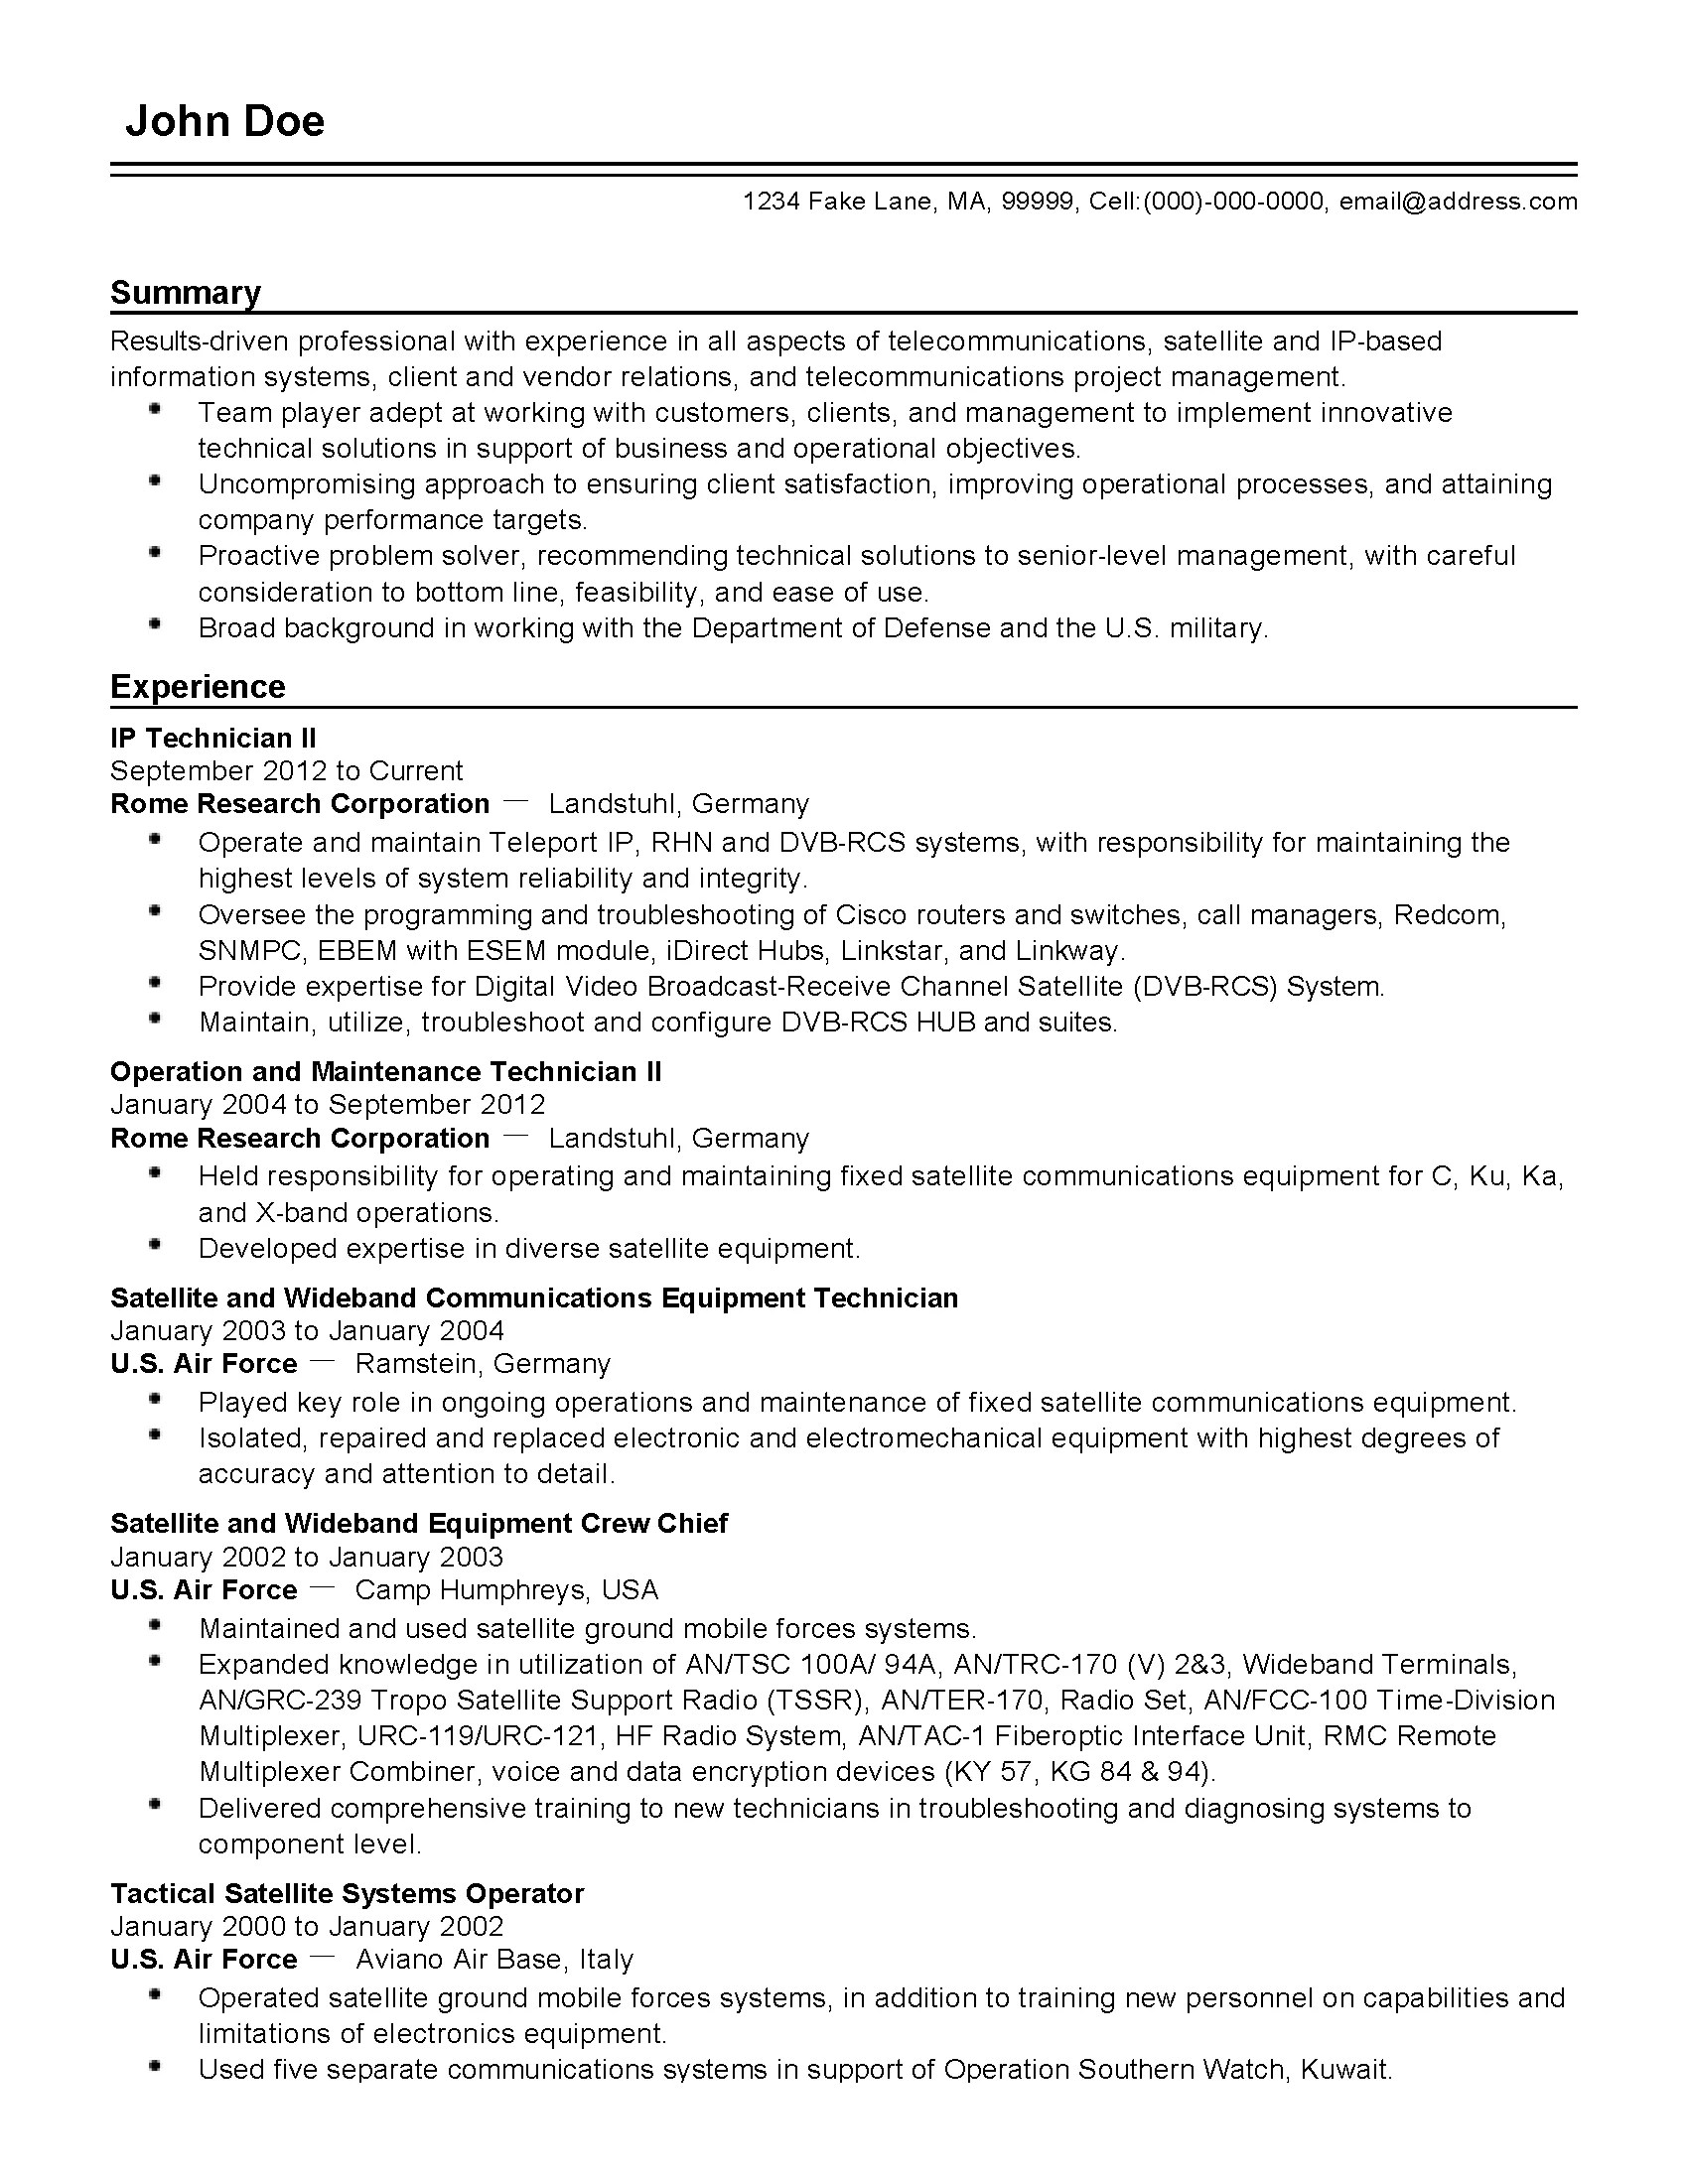 Resume For Telecommunications Technician Professional Telecommunications It Professional Templates